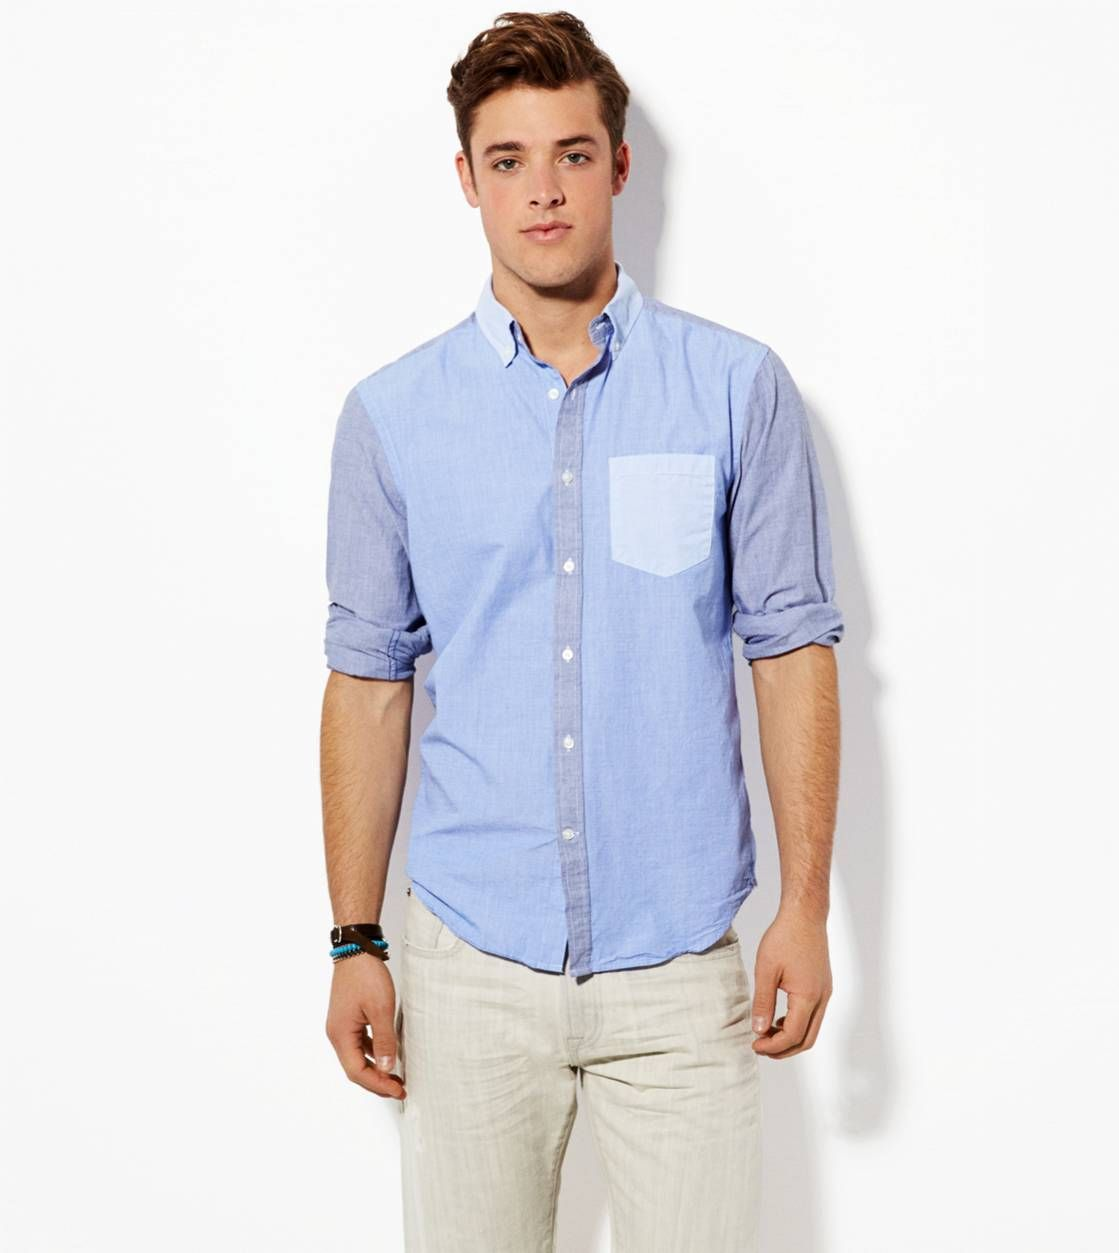 Blue AE Colorblock Button Down Shirt | Things to Wear | Pinterest ...